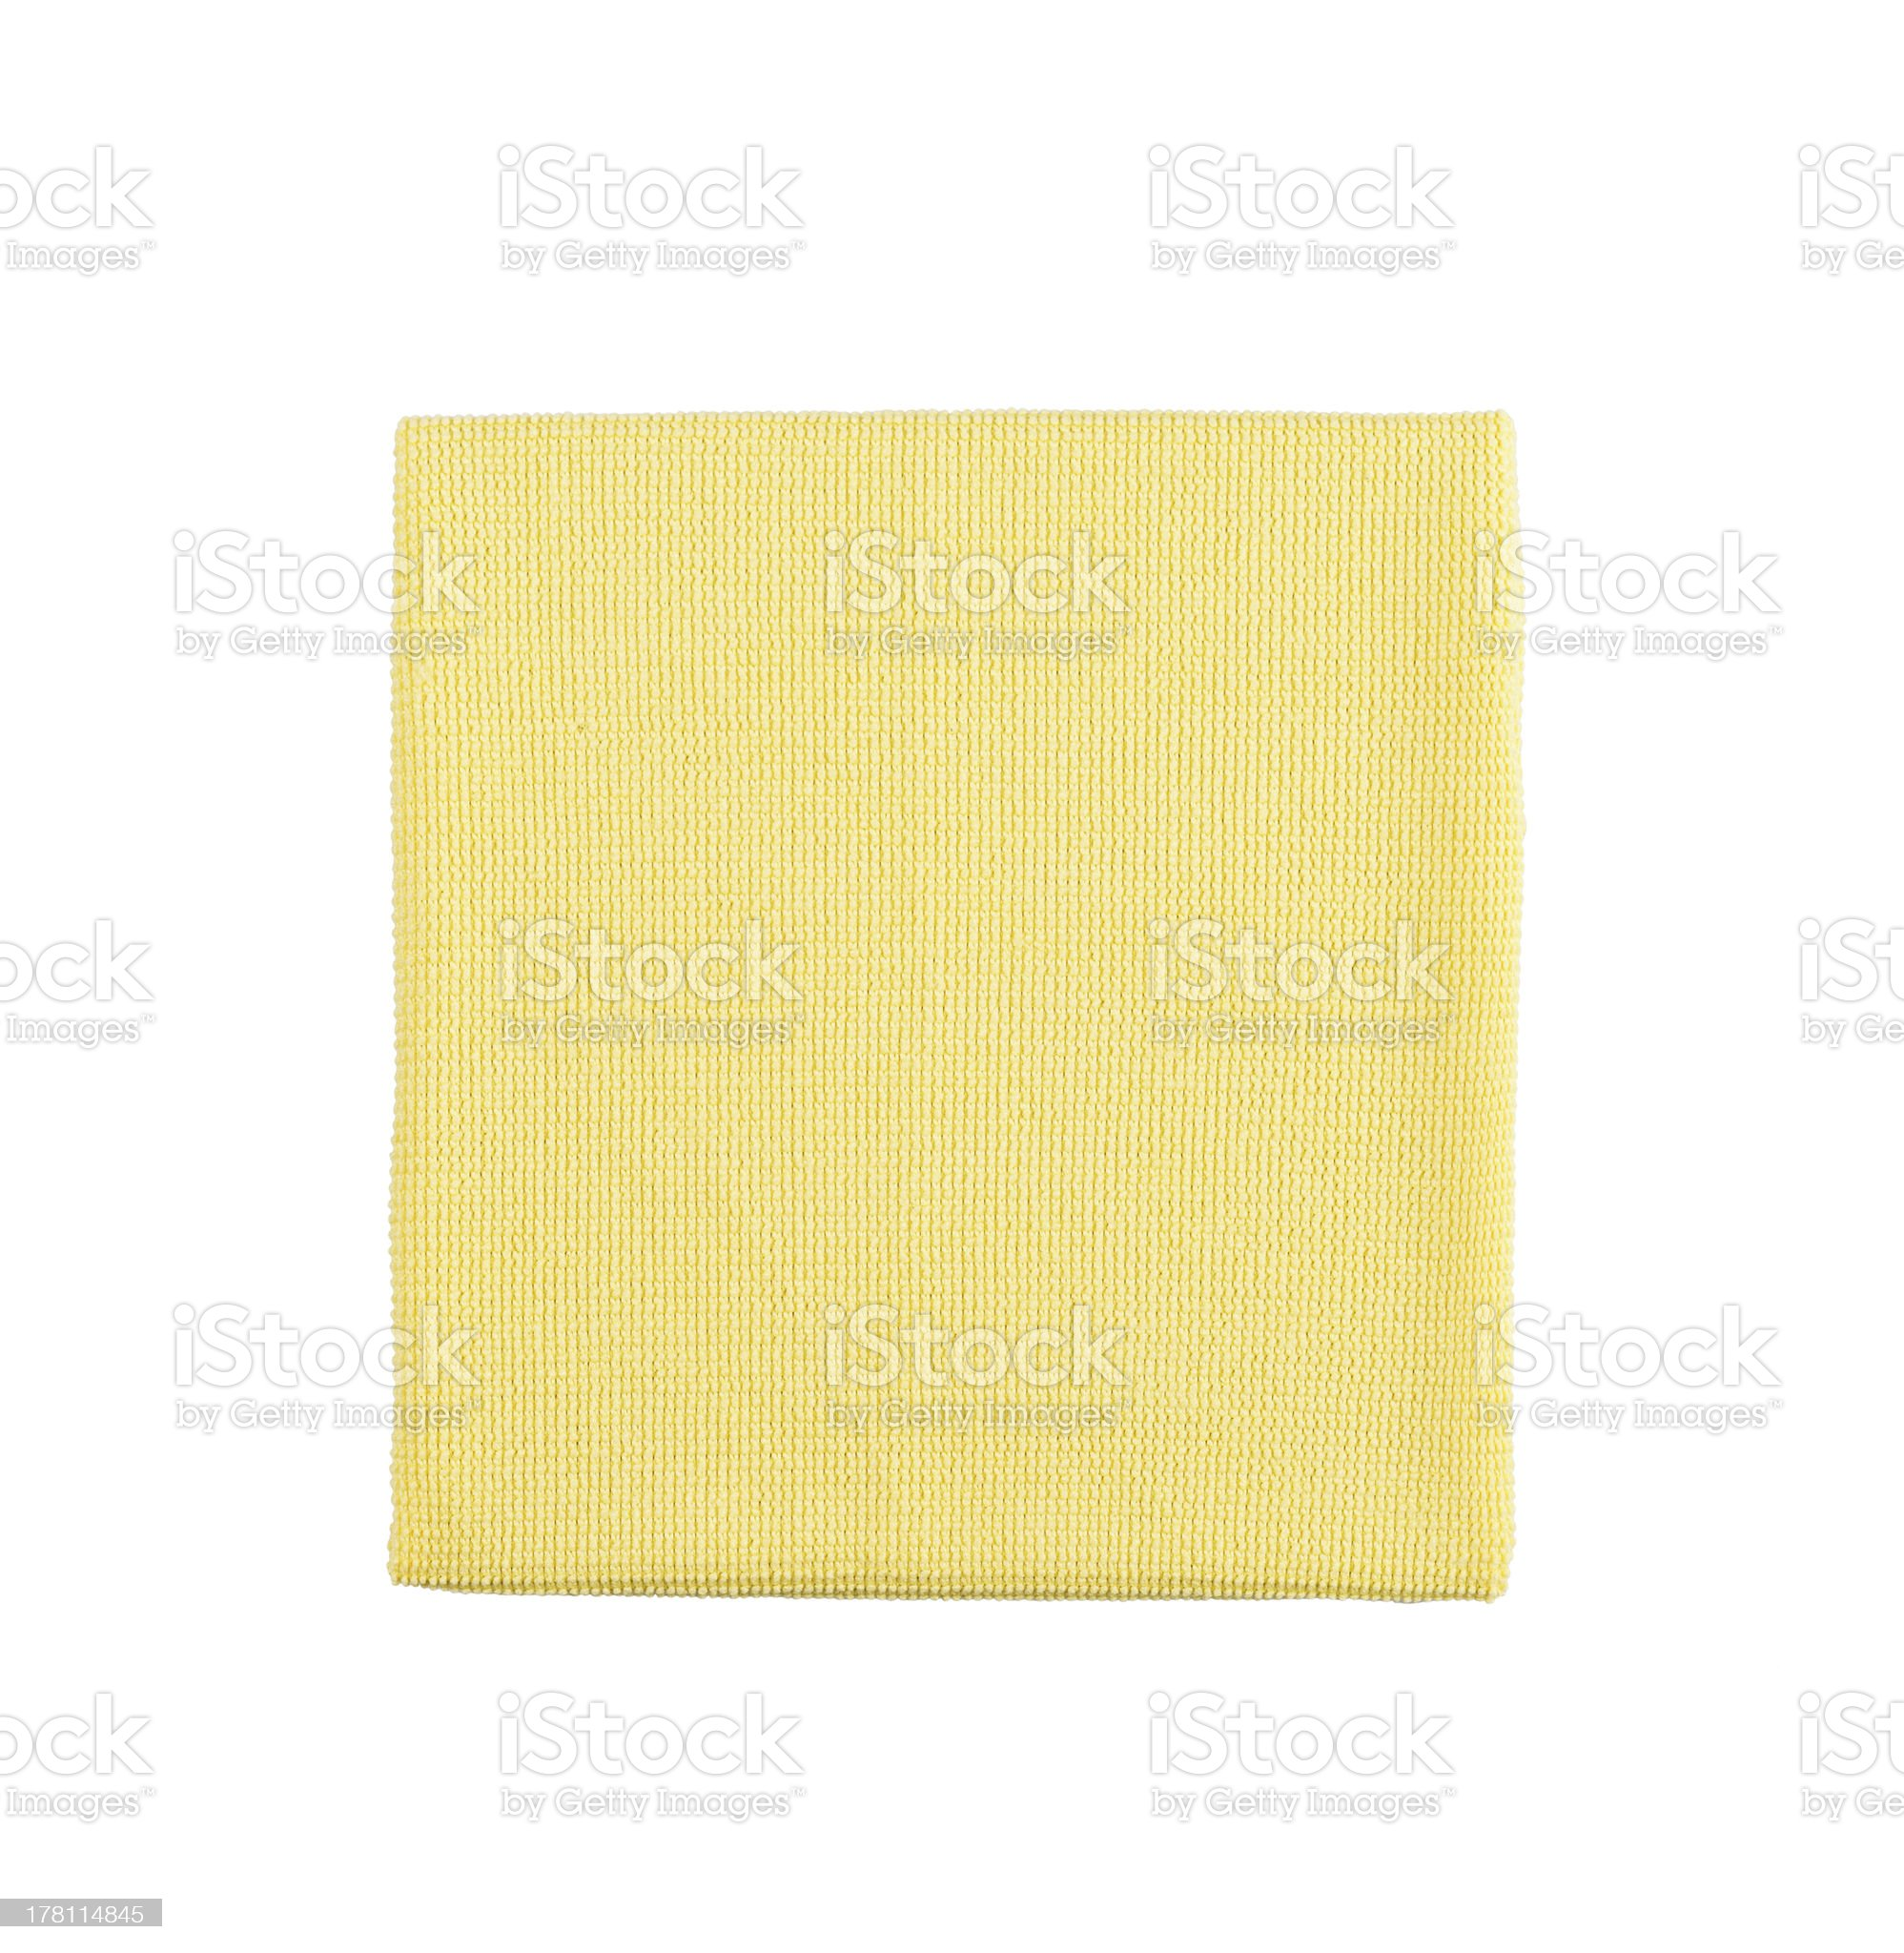 Microfiber cleaning towel over white background royalty-free stock photo